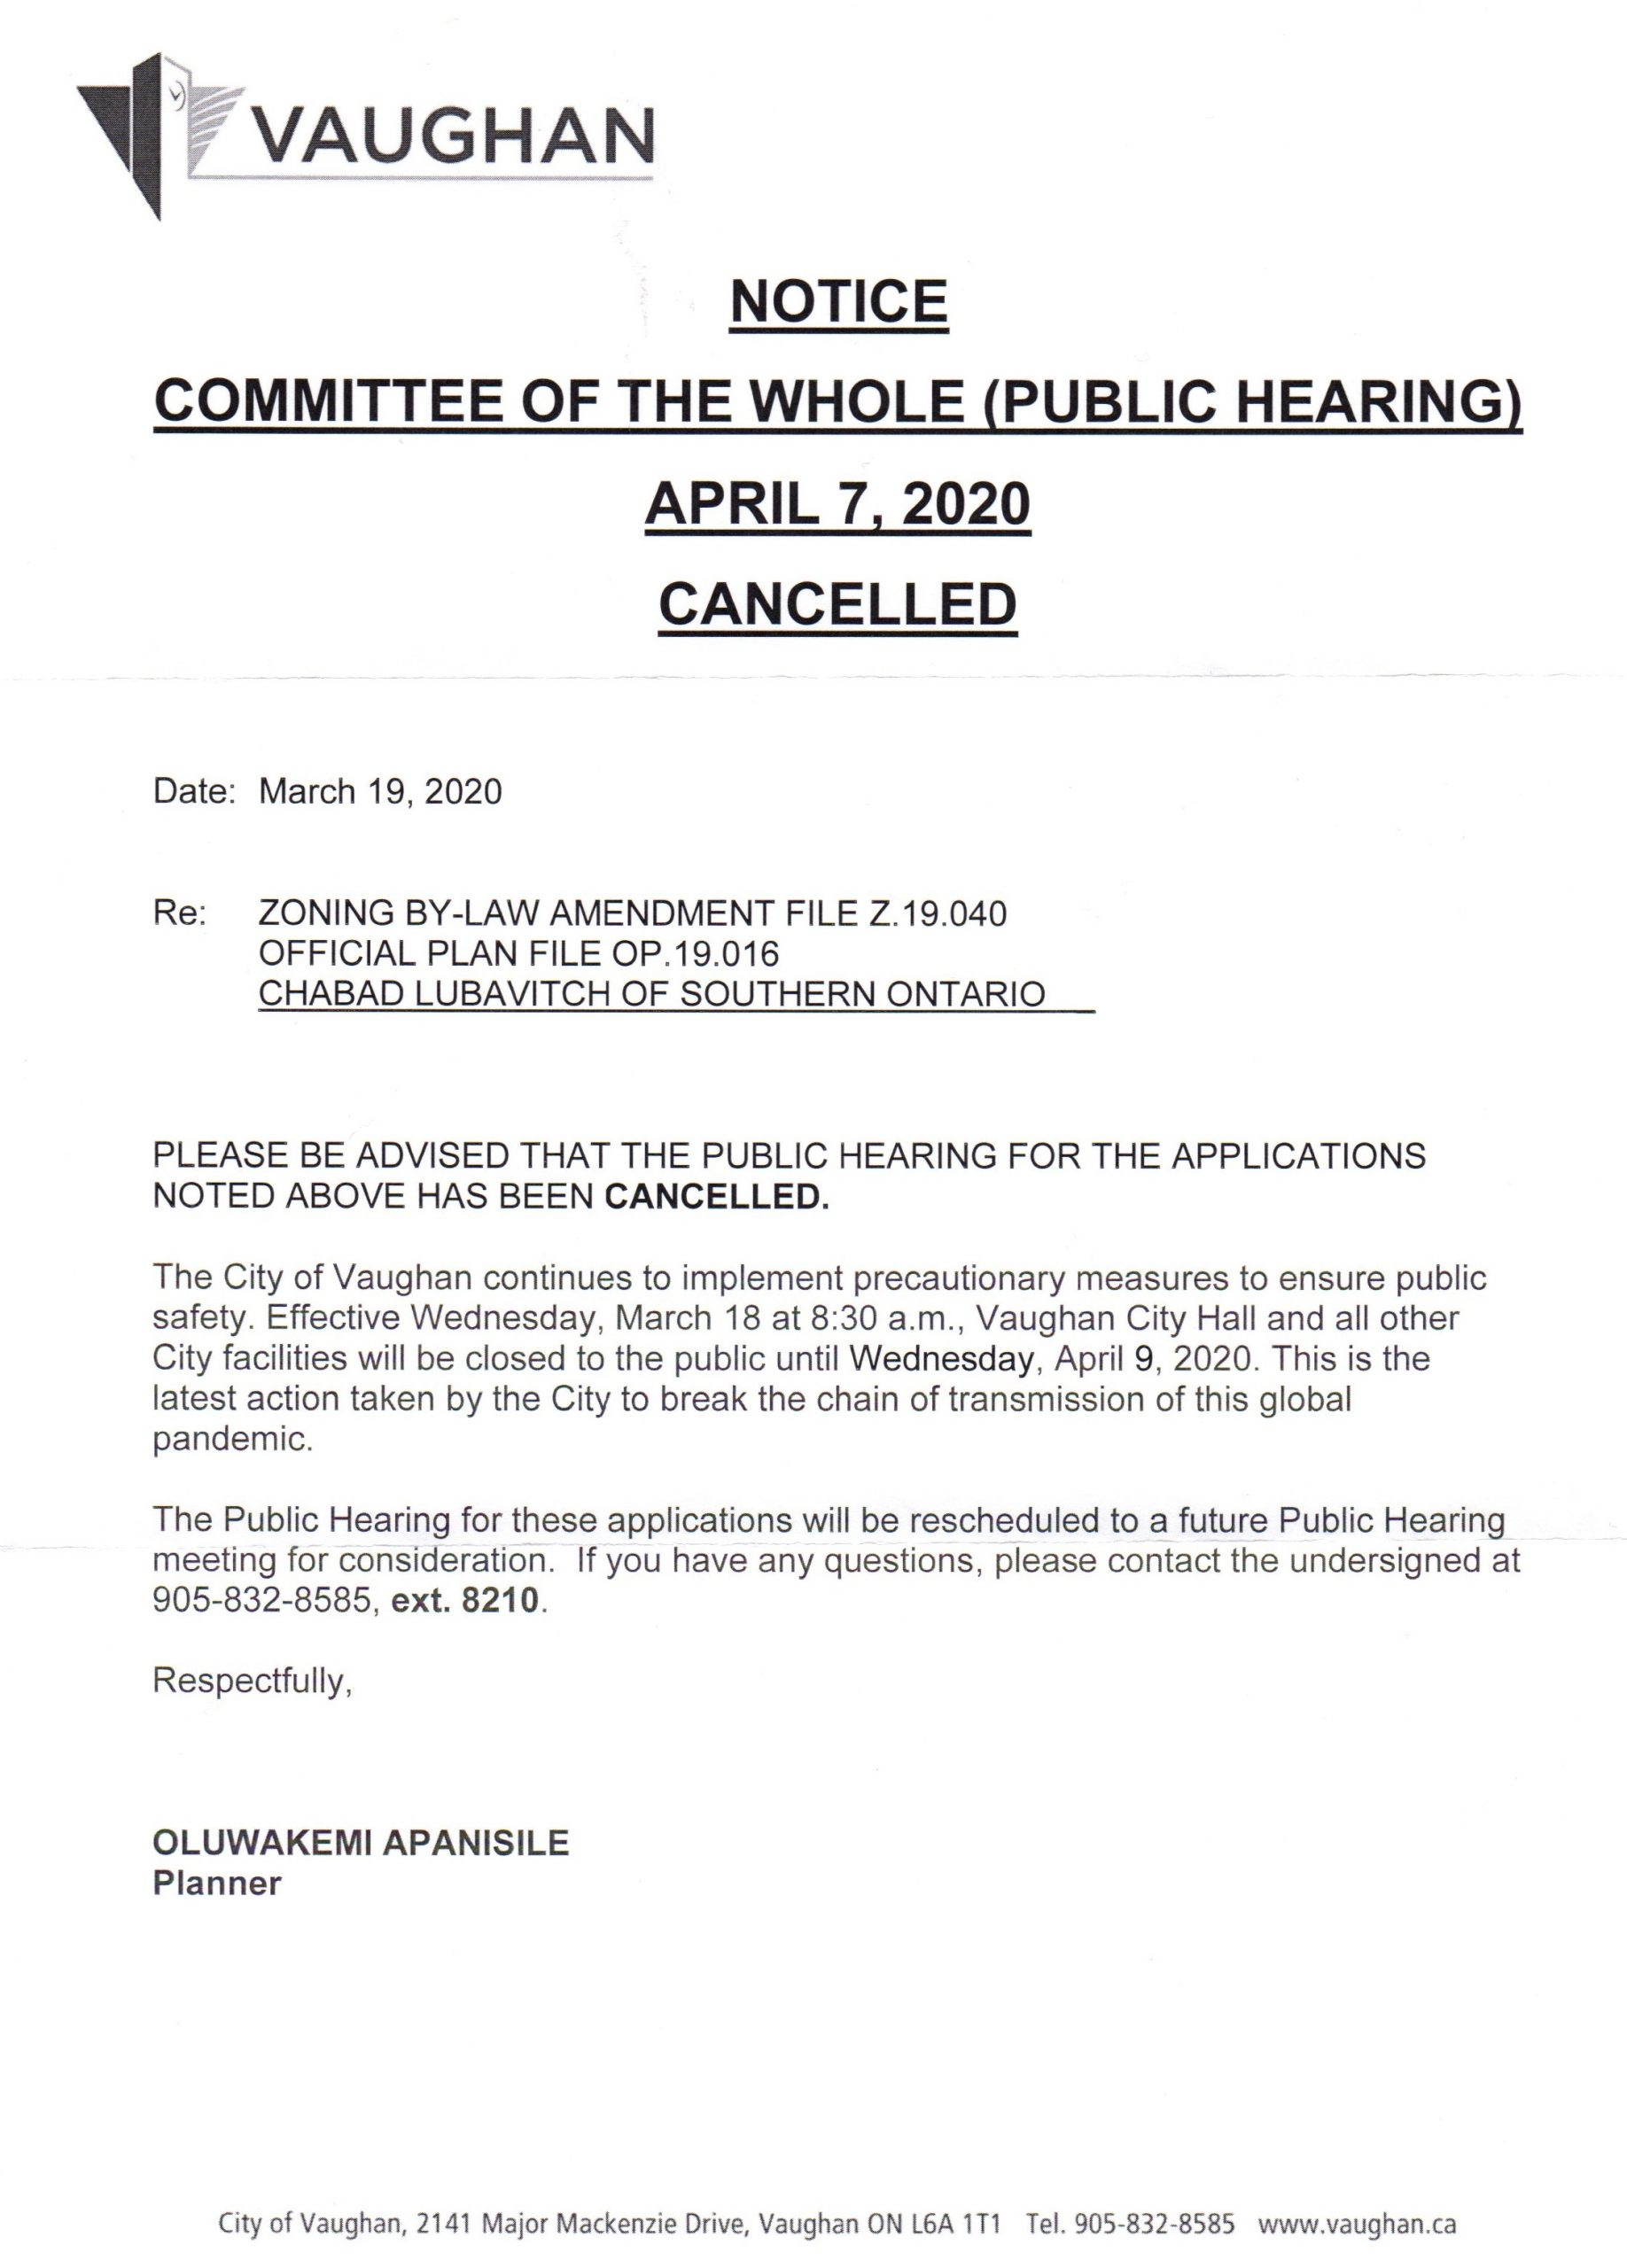 Notice of public hearing cancellation